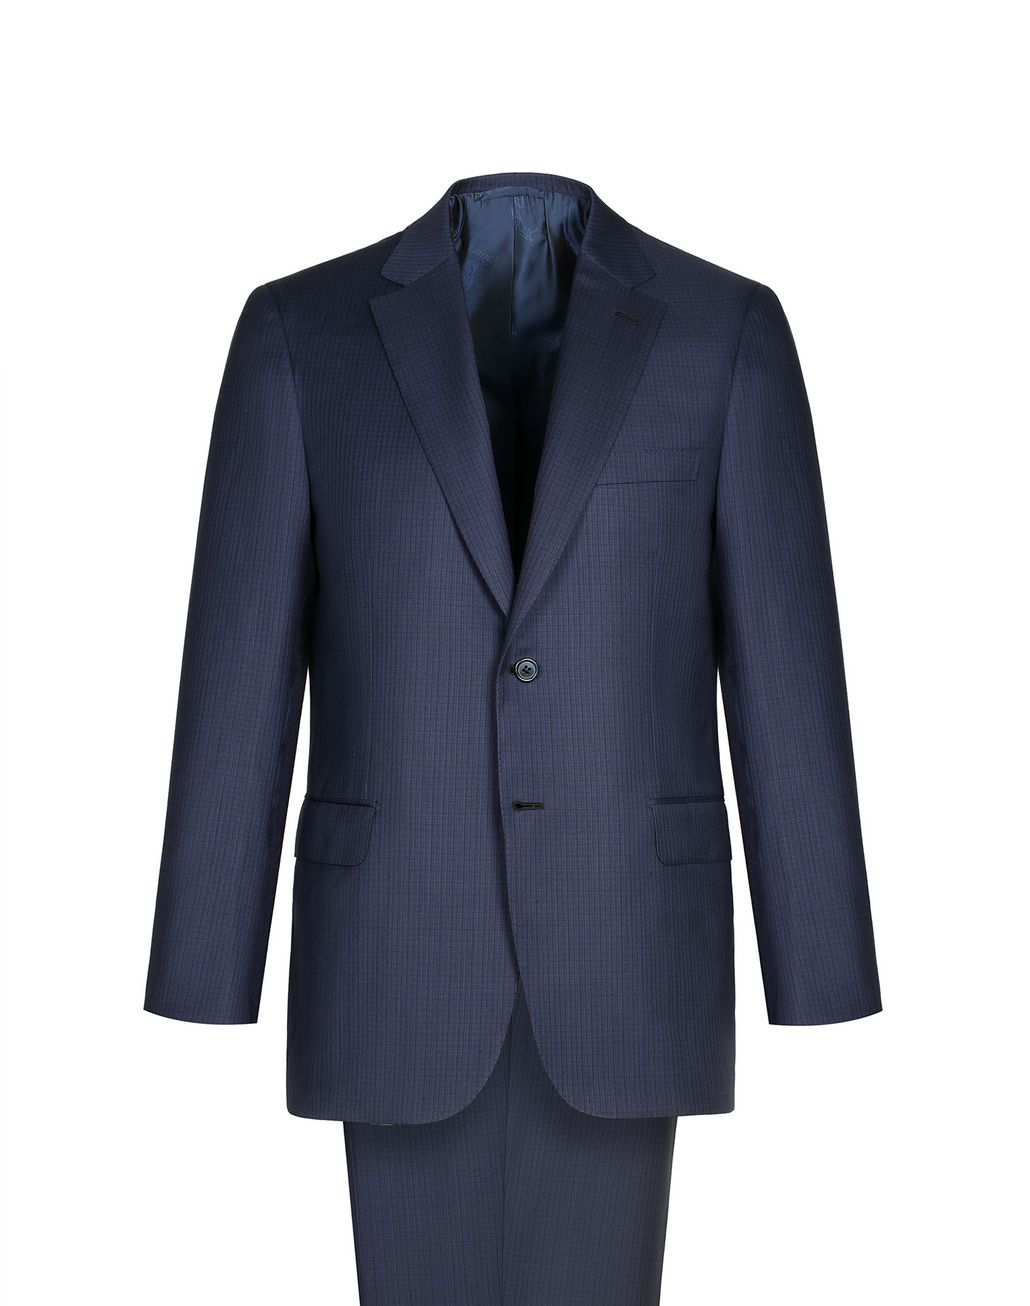 BRIONI Navy Blue Micro-Check Herringbone Ventiquattro Brunico Suit Suits & Jackets [*** pickupInStoreShippingNotGuaranteed_info ***] f